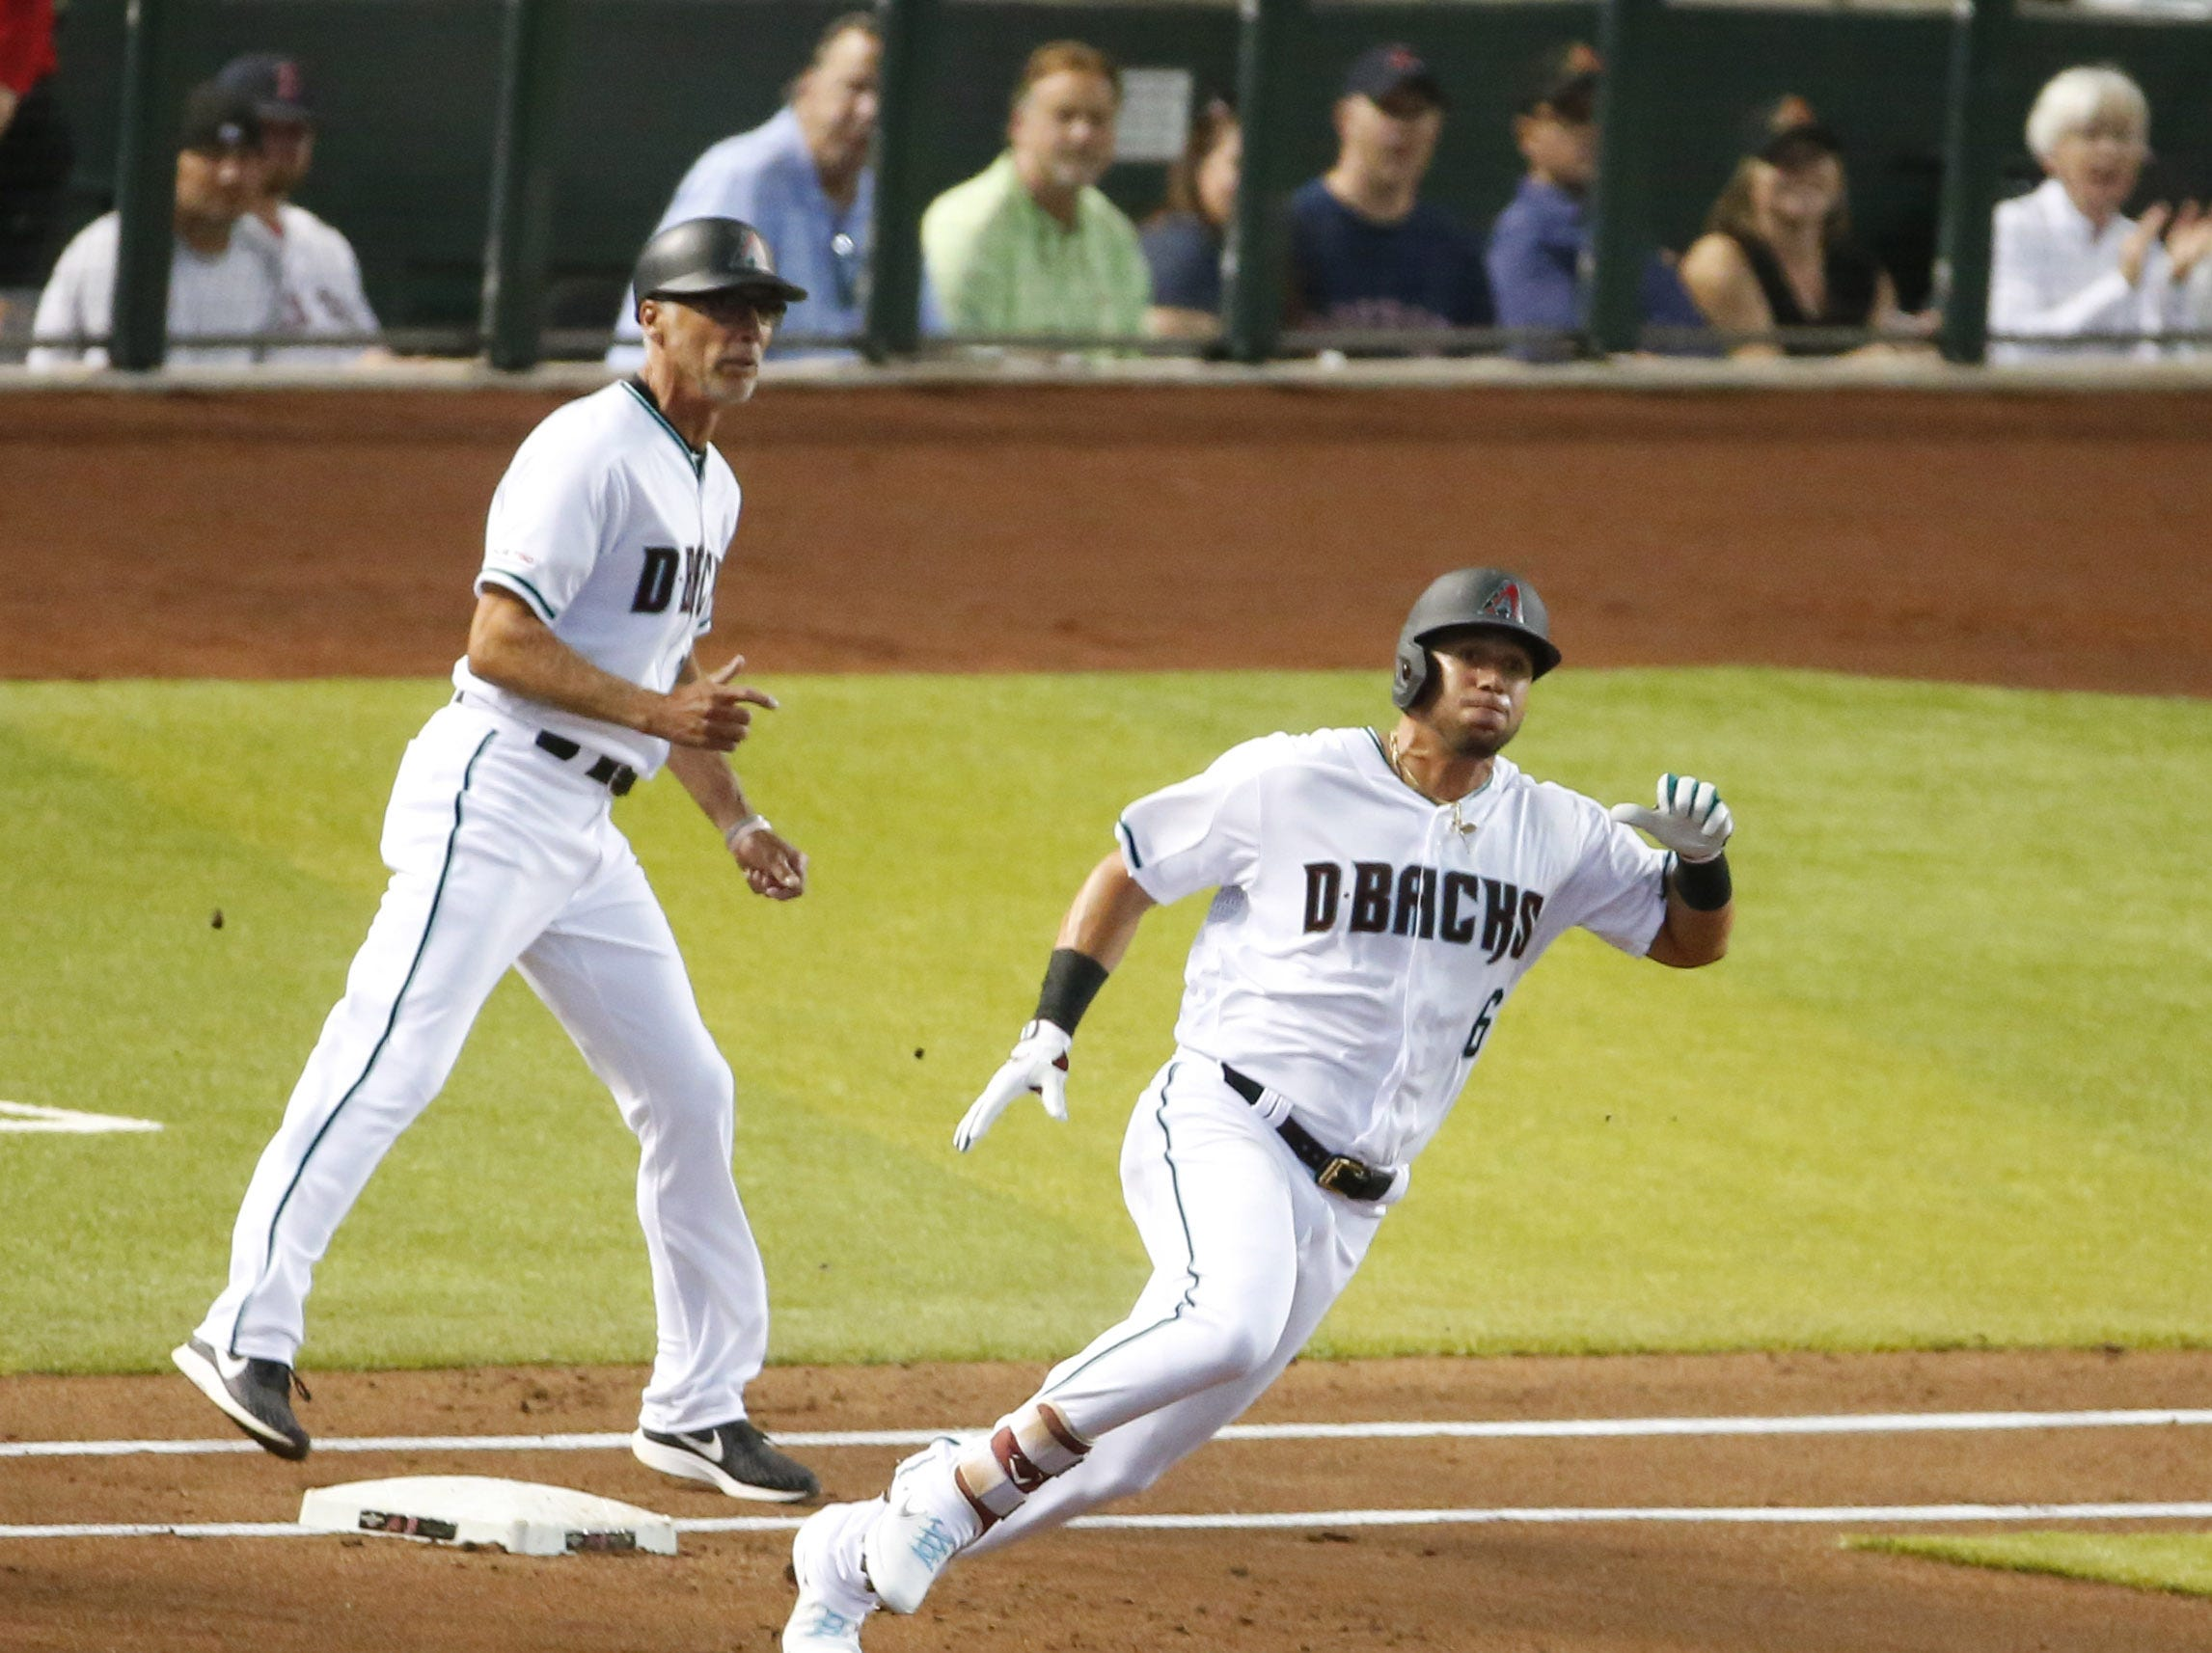 Arizona Diamondbacks right fielder David Peralta (6) rounds first base during an MLB game against the Boston Red Sox at Chase Field in Phoenix on April 5.